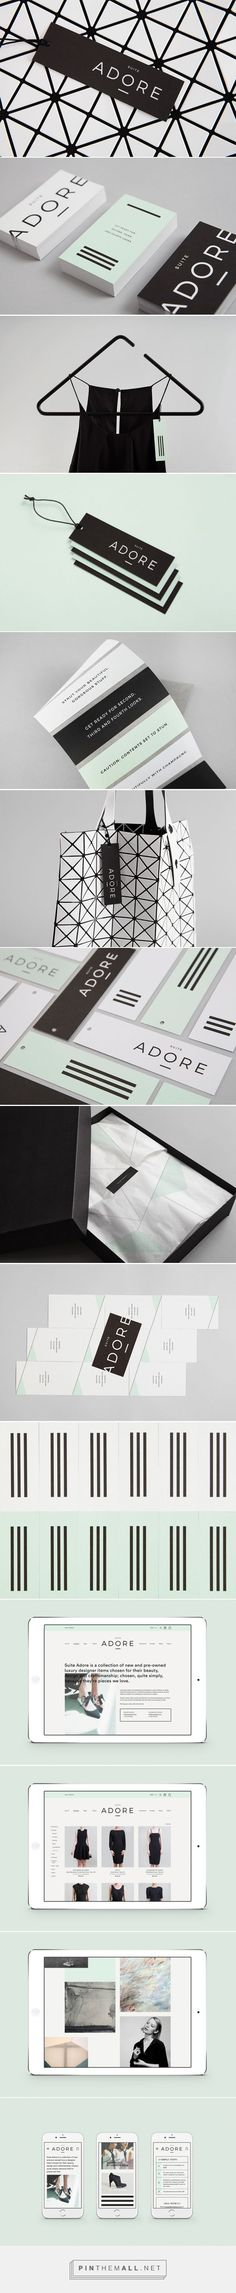 Suite Adore Luxury Consignment Retailer Branding by Blok Design | Fivestar Branding Agency – Design and Branding Agency & Curated Inspiration Gallery